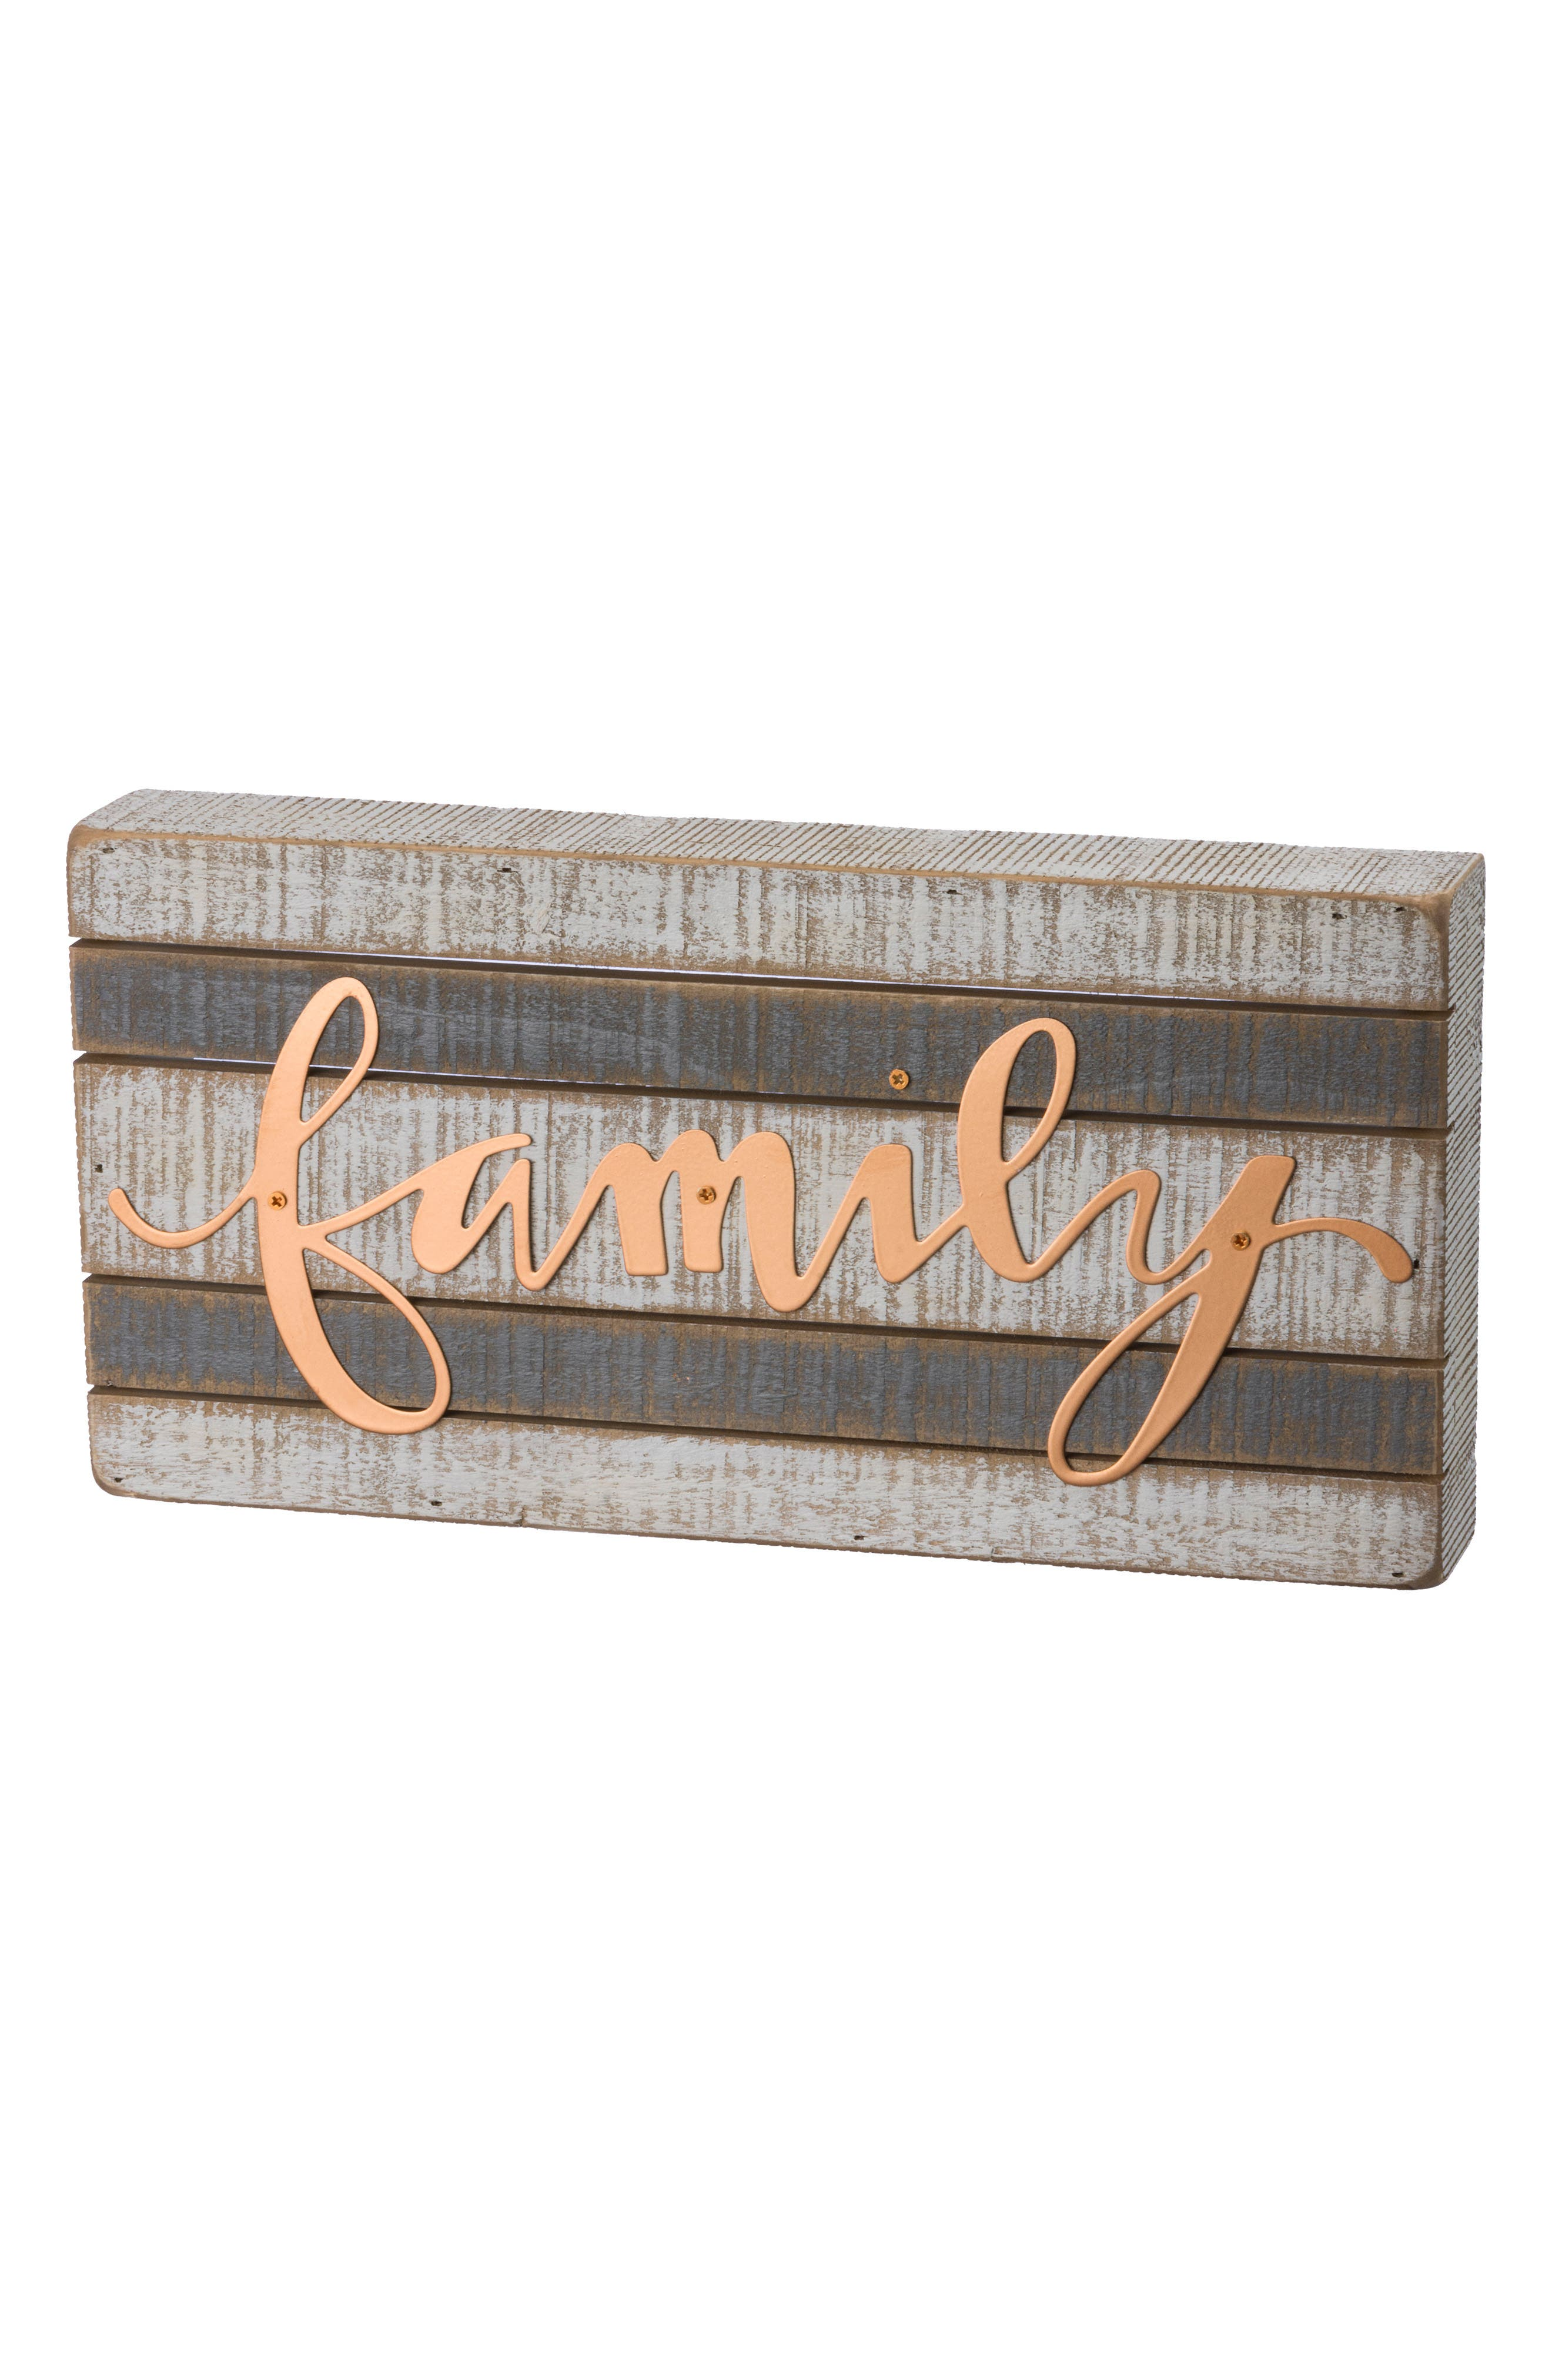 Family Wood Box Sign,                         Main,                         color, Ivory